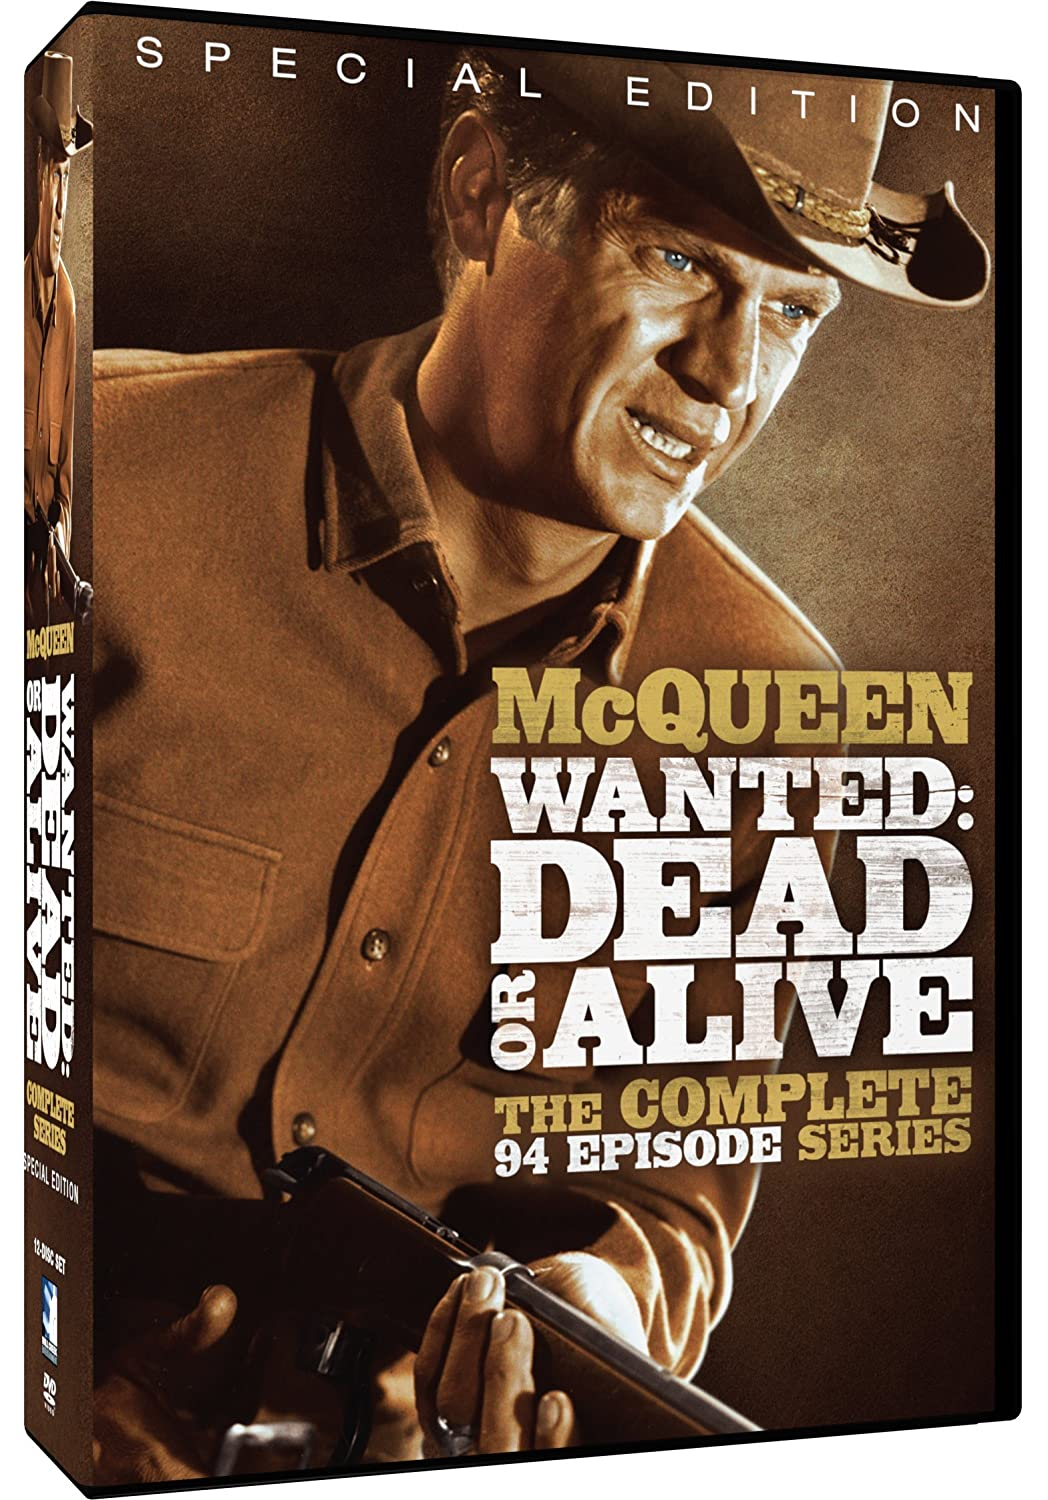 Wanted: Dead or Alive: The Complete Series (Special Edition) Steve McQueen Michael Landon James Corburn DeForest Kelly